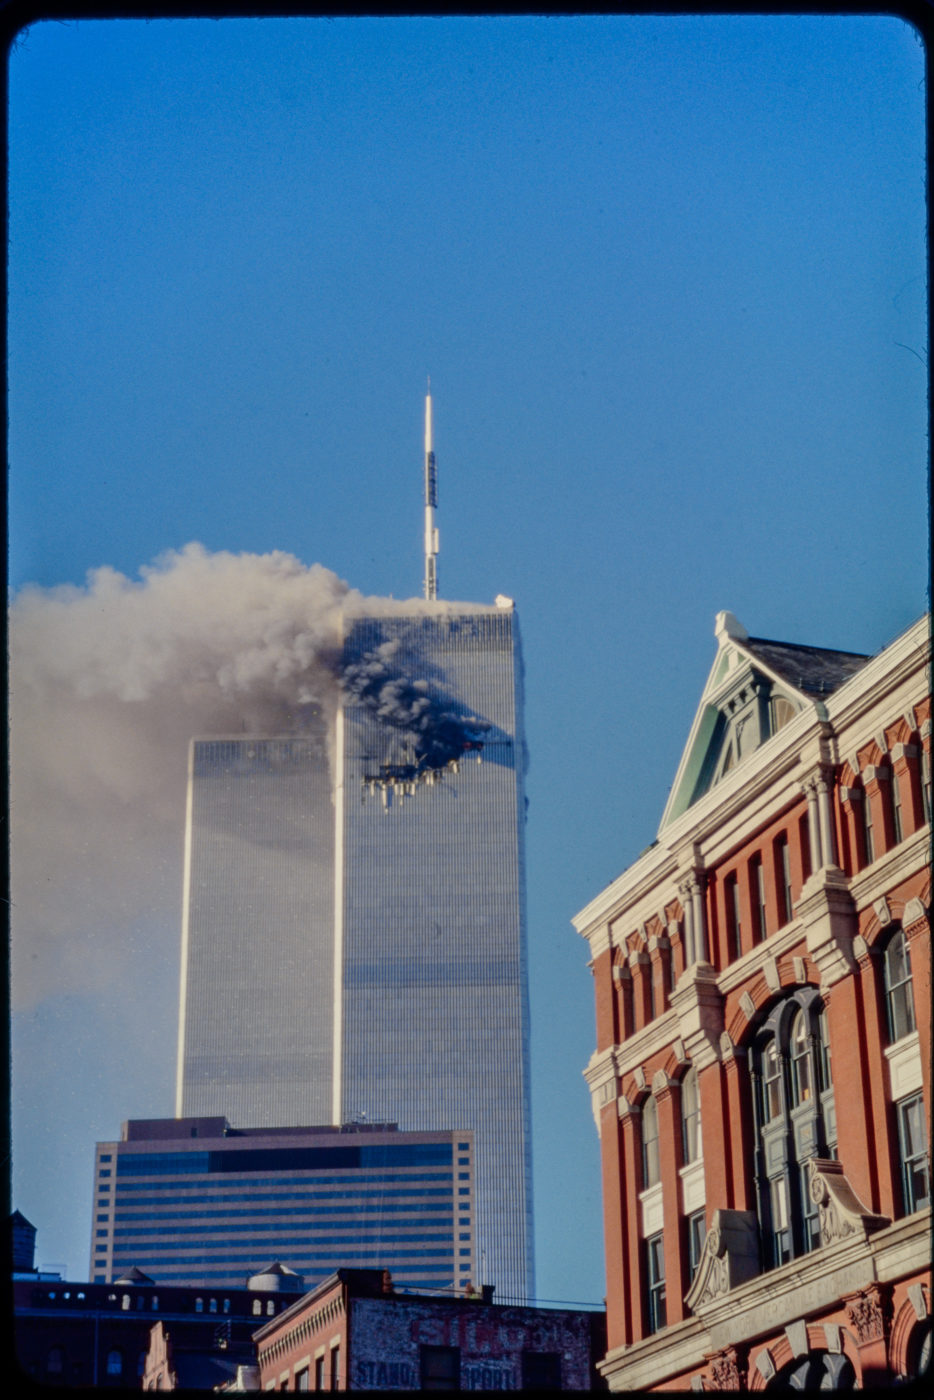 Tower1 Burning as seen from Franklin and Hudson.jpg